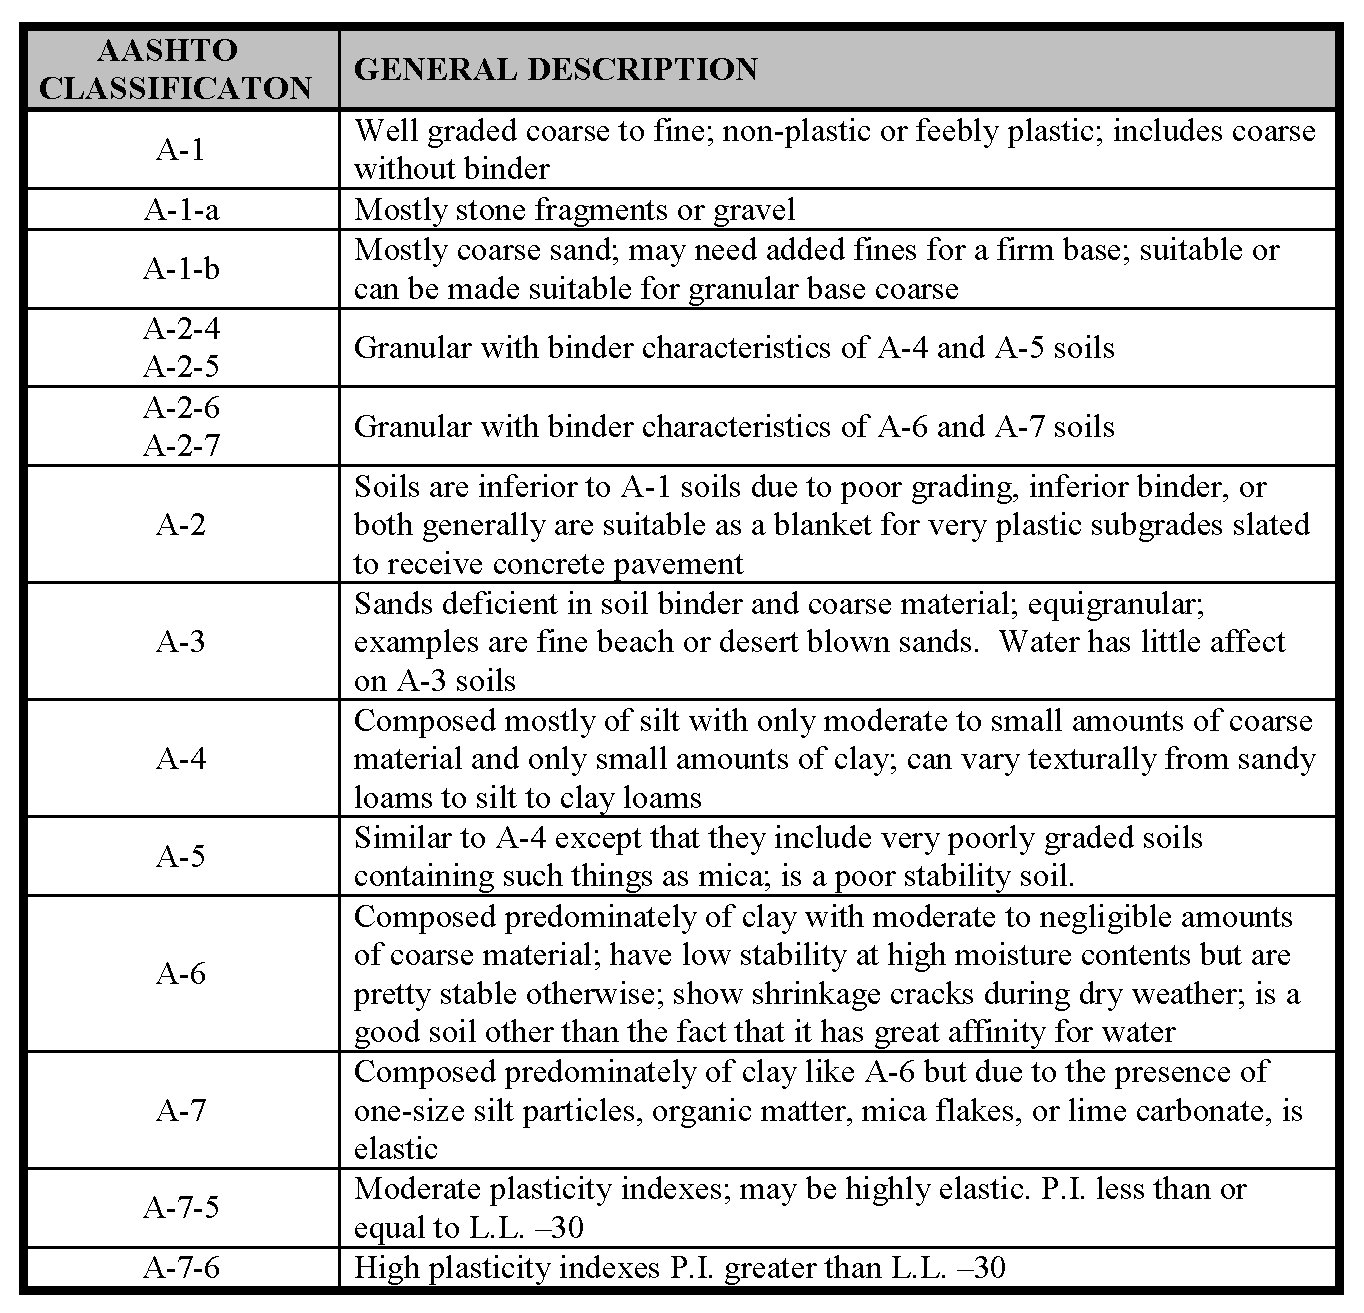 Construction manual aashto claasification table 1g nvjuhfo Image collections